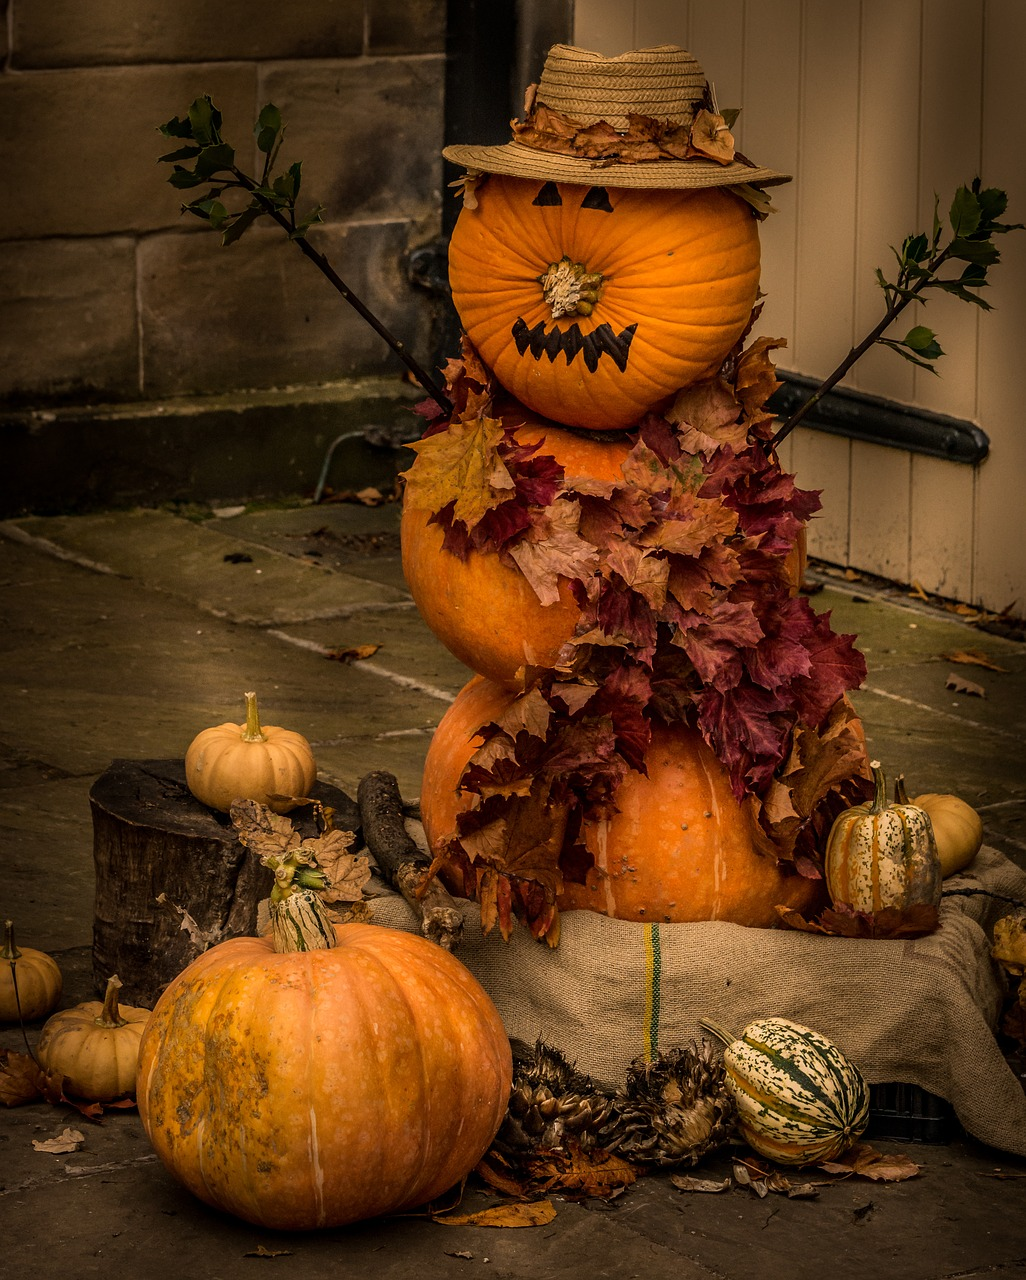 how to ensure your family has a spooky, safe halloween - rinehart